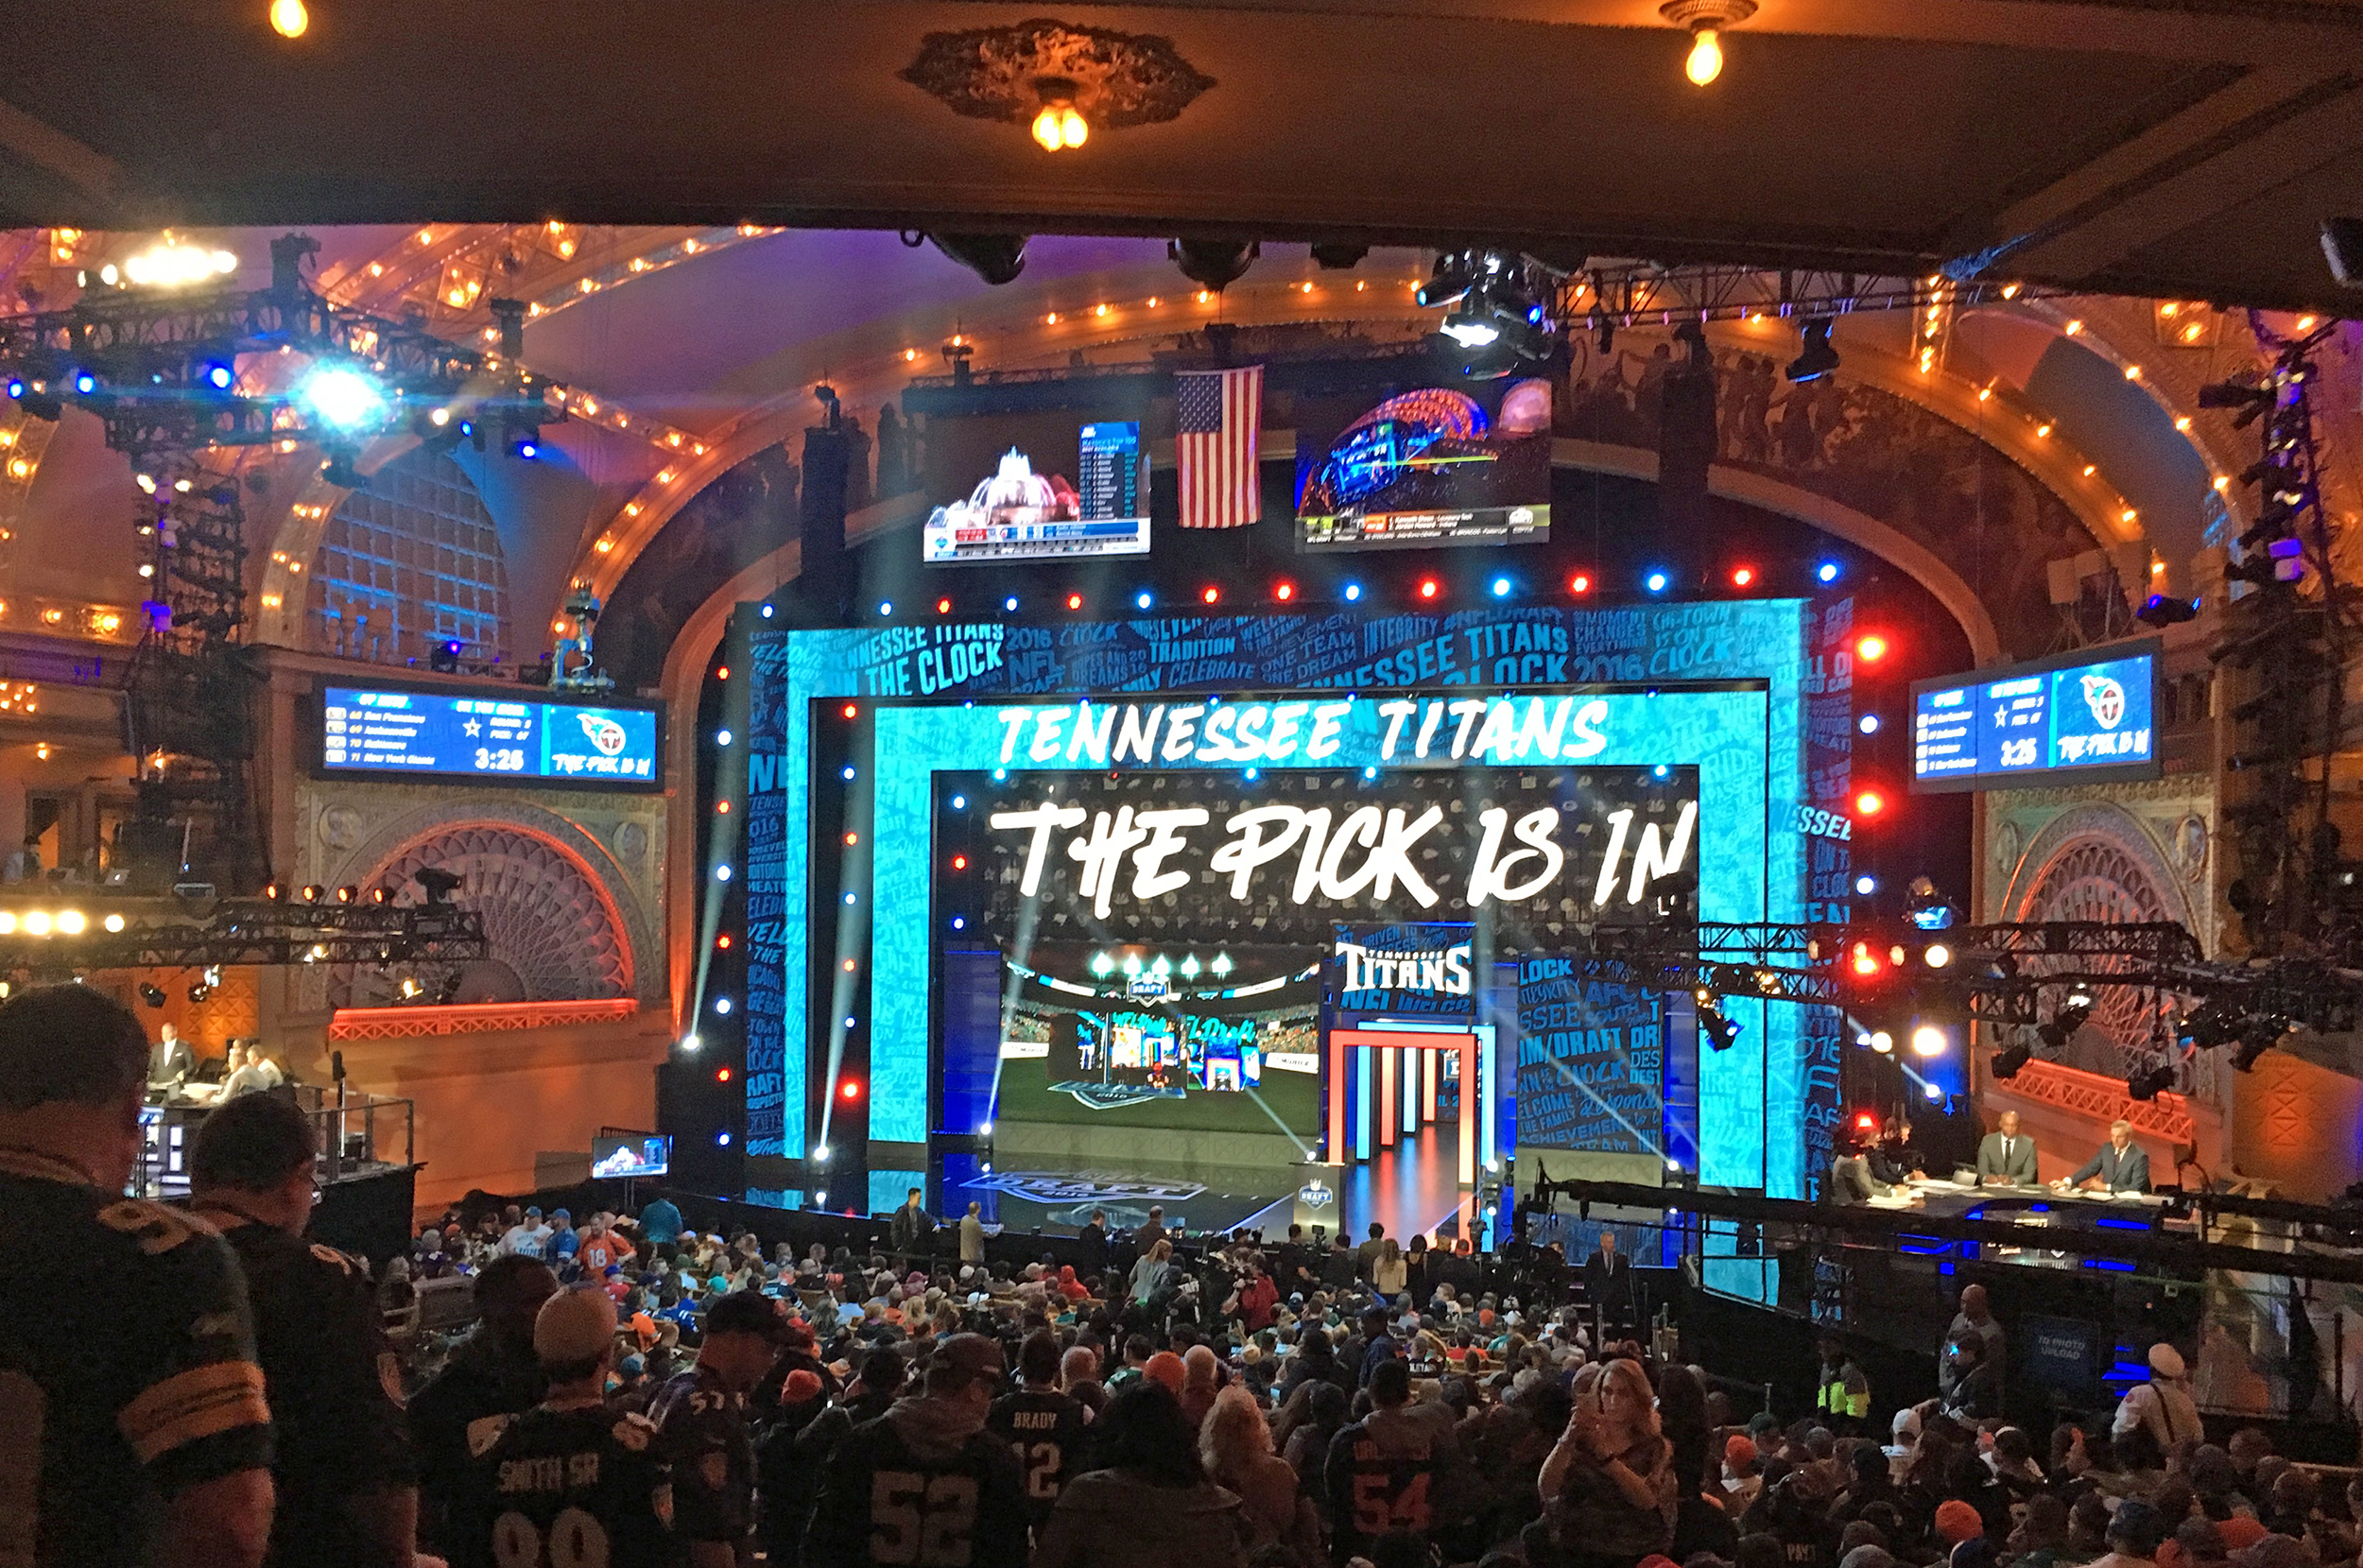 The NFL draft (pictured above) will be where many future professional players will hear their names called. The draft will take place on Thursday April 25 in Nashville, Tenn. (courtesy of Creative Commons).